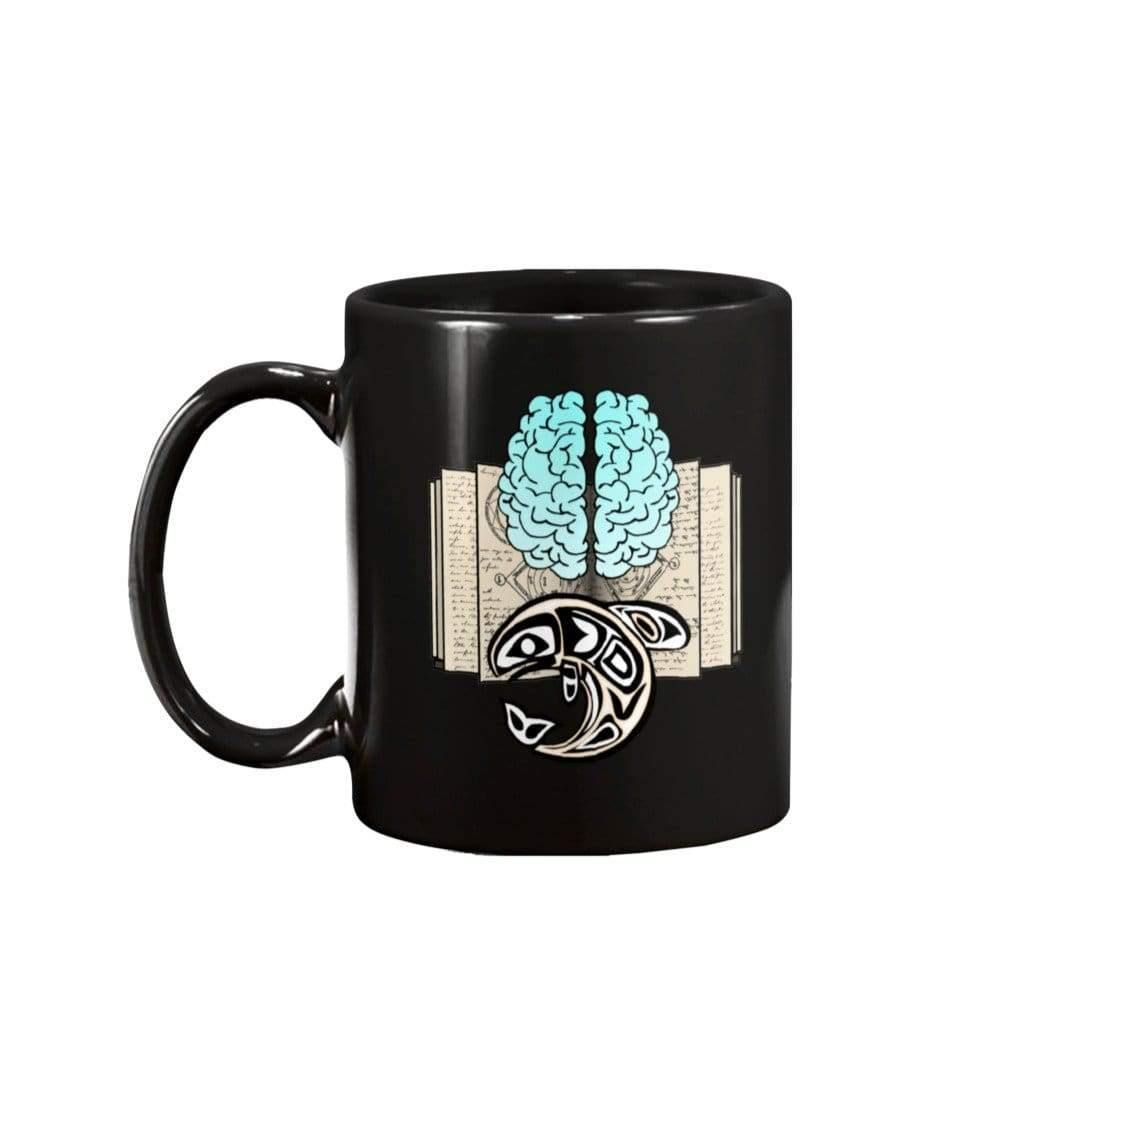 AEDG DUSTRUS 15oz Coffee Mug - Black / 15OZ - Mugs